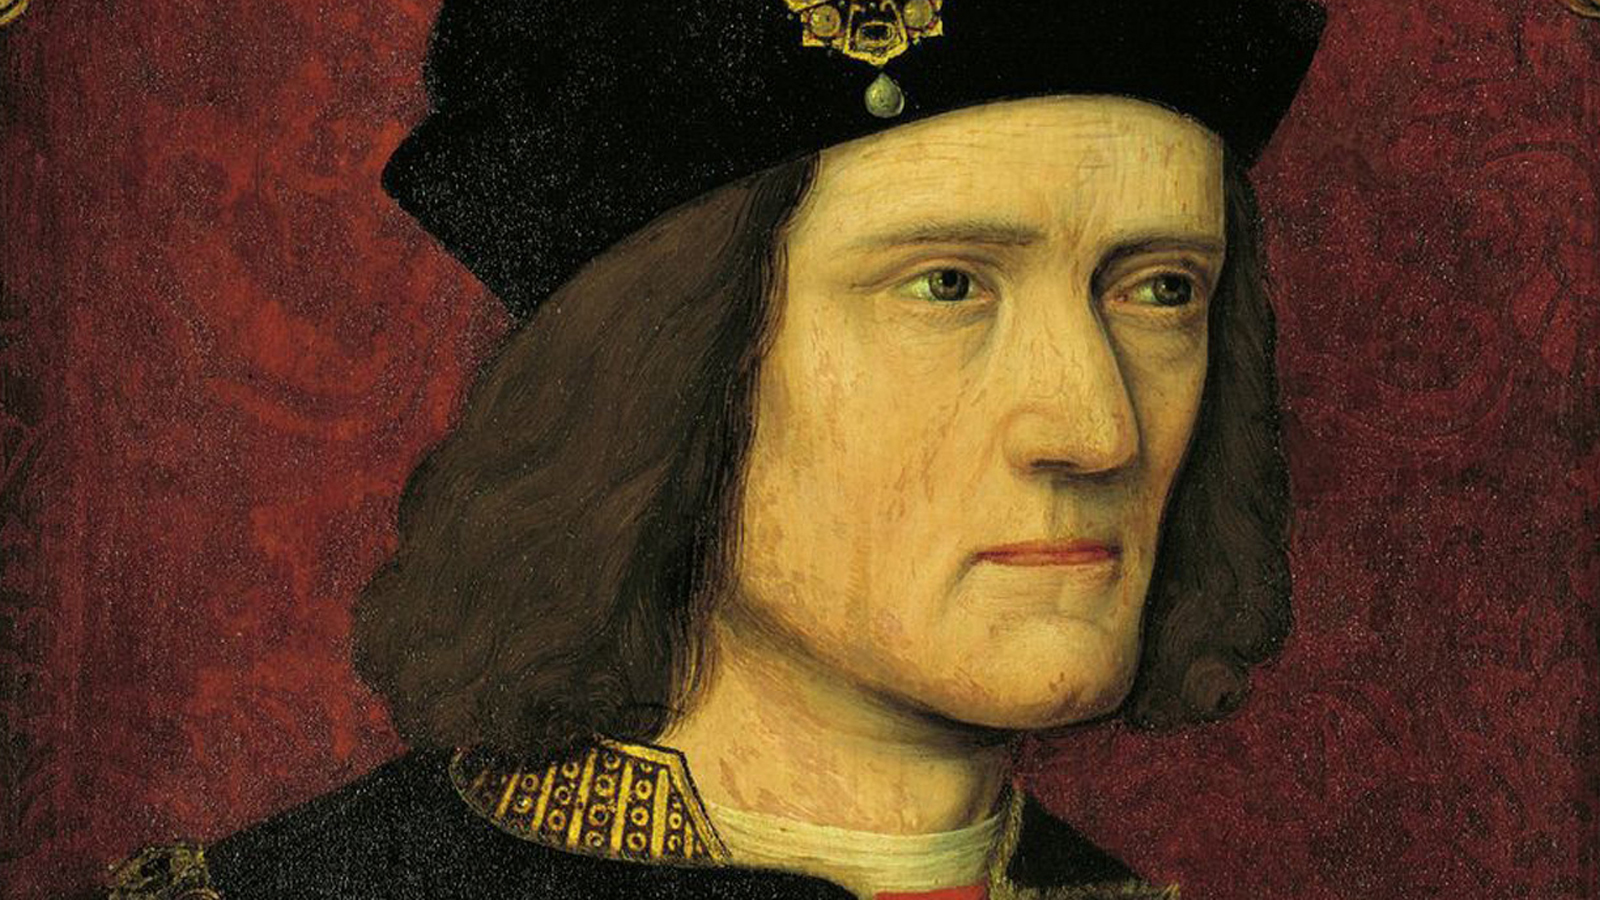 Richard III and the staging of disability